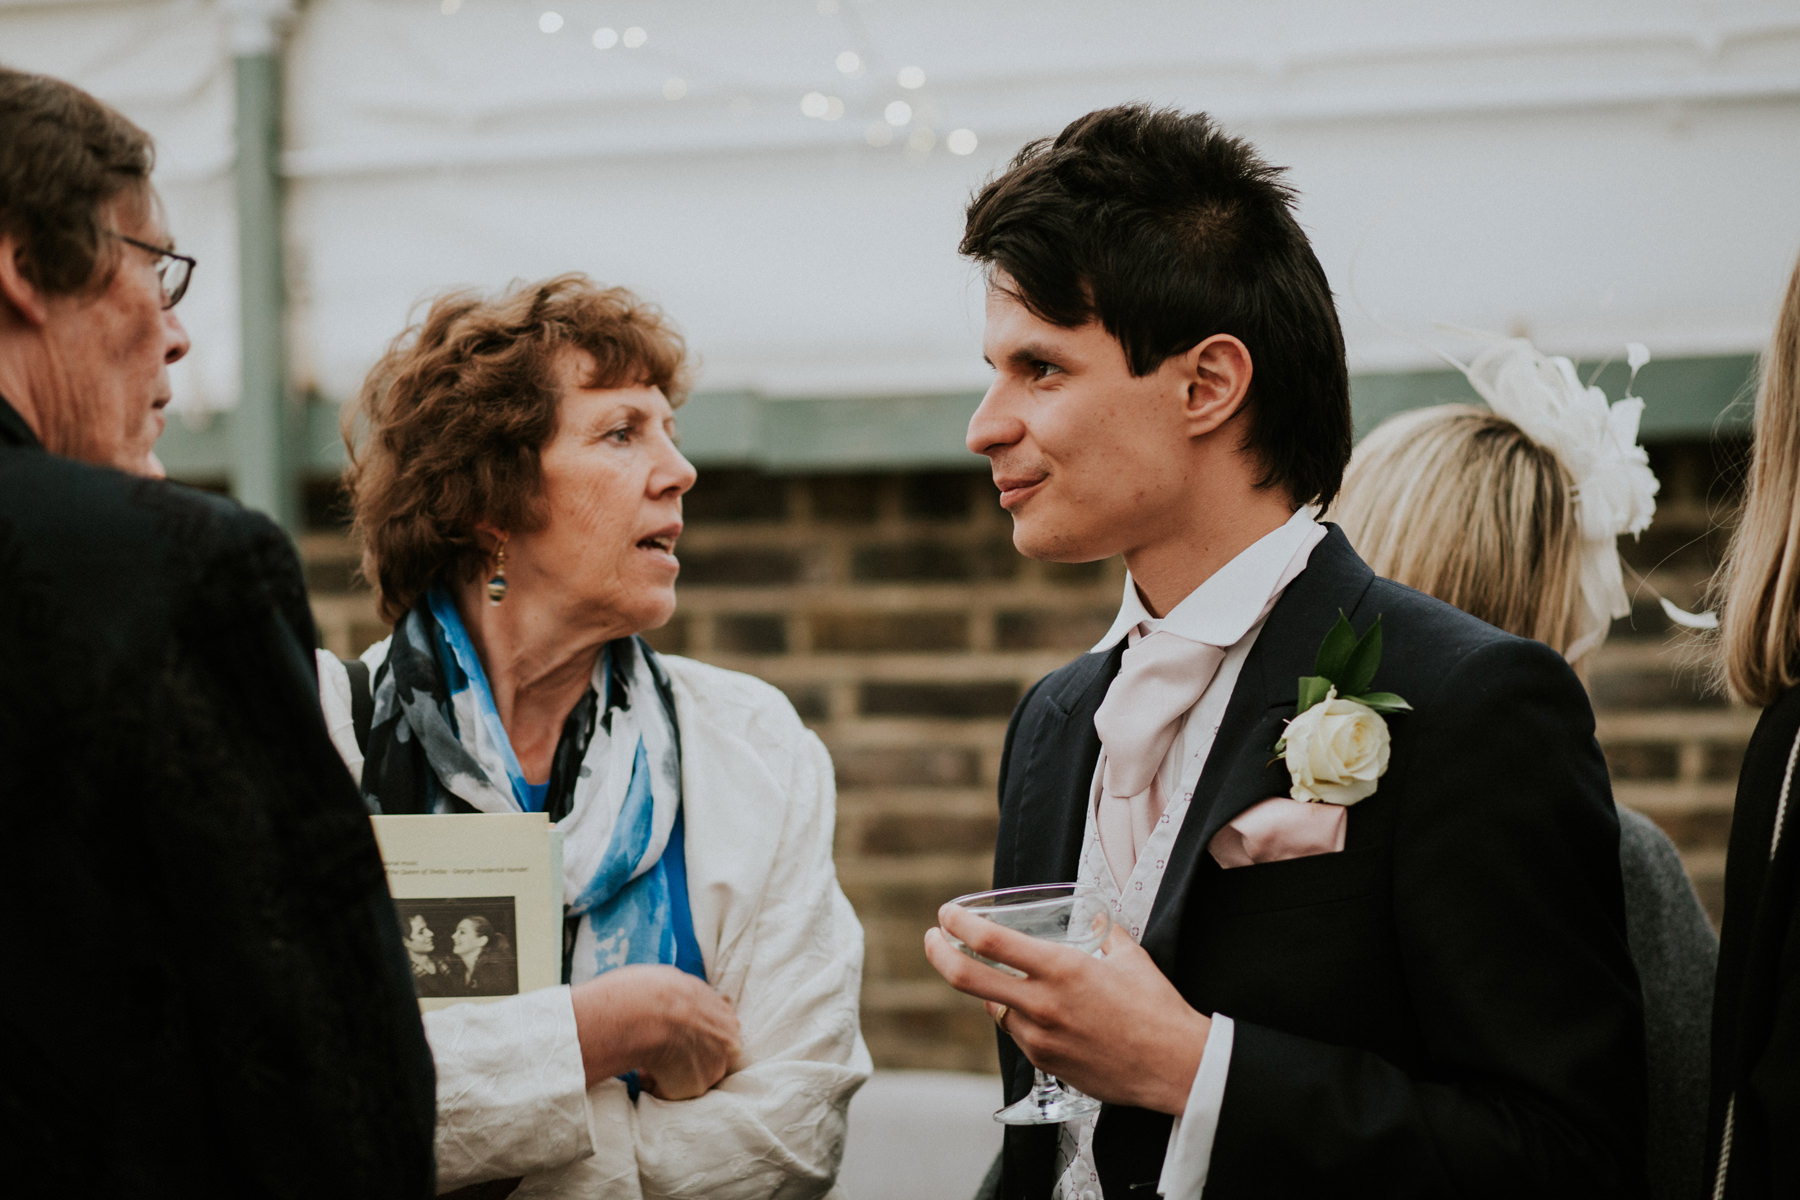 LD-571-Metro-Clapham-Wedding-guest-candid-unposed-photos.jpg